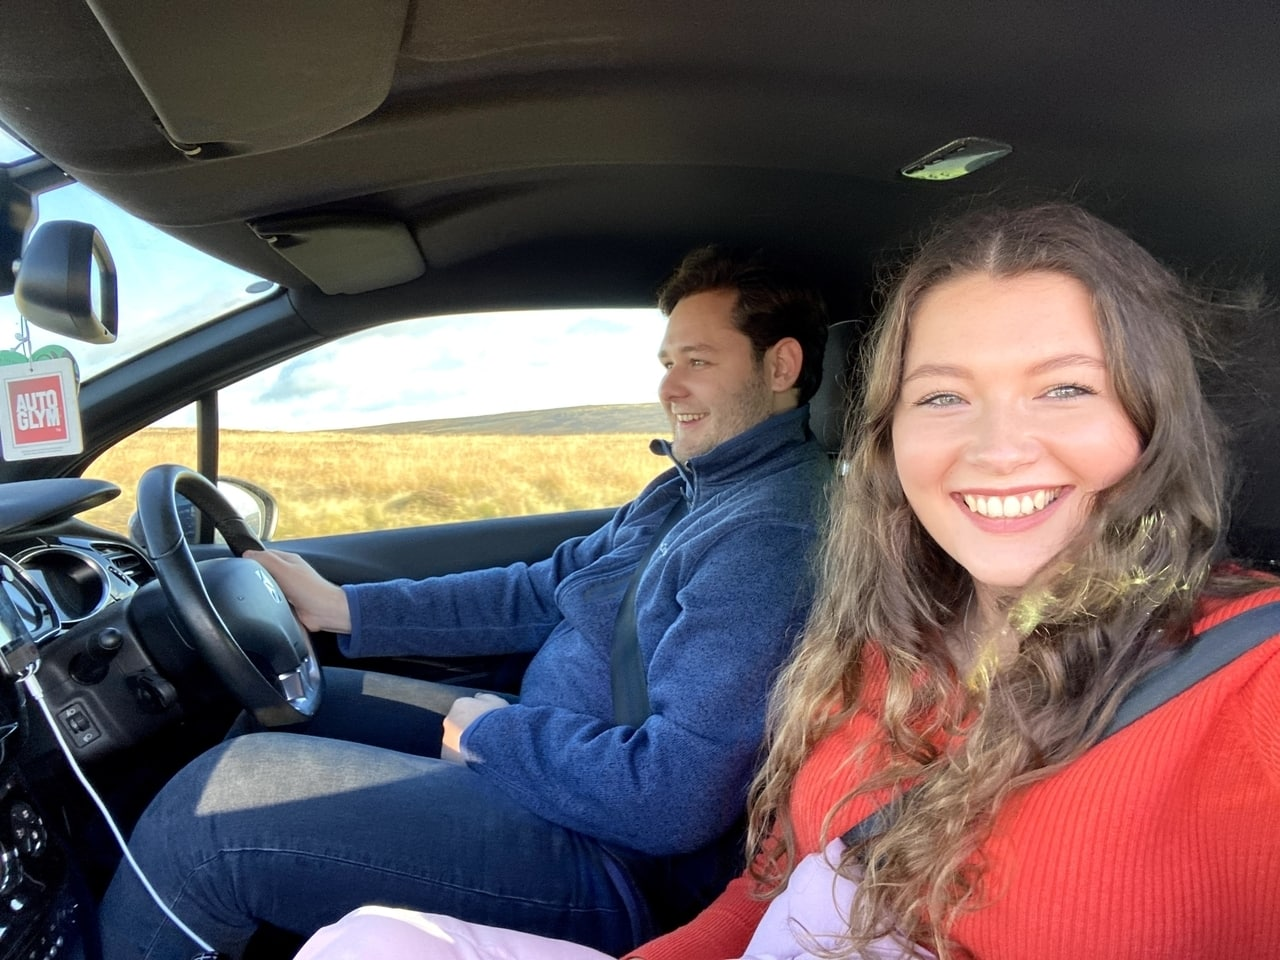 Friends road tripping on the Yorkshire coast UK